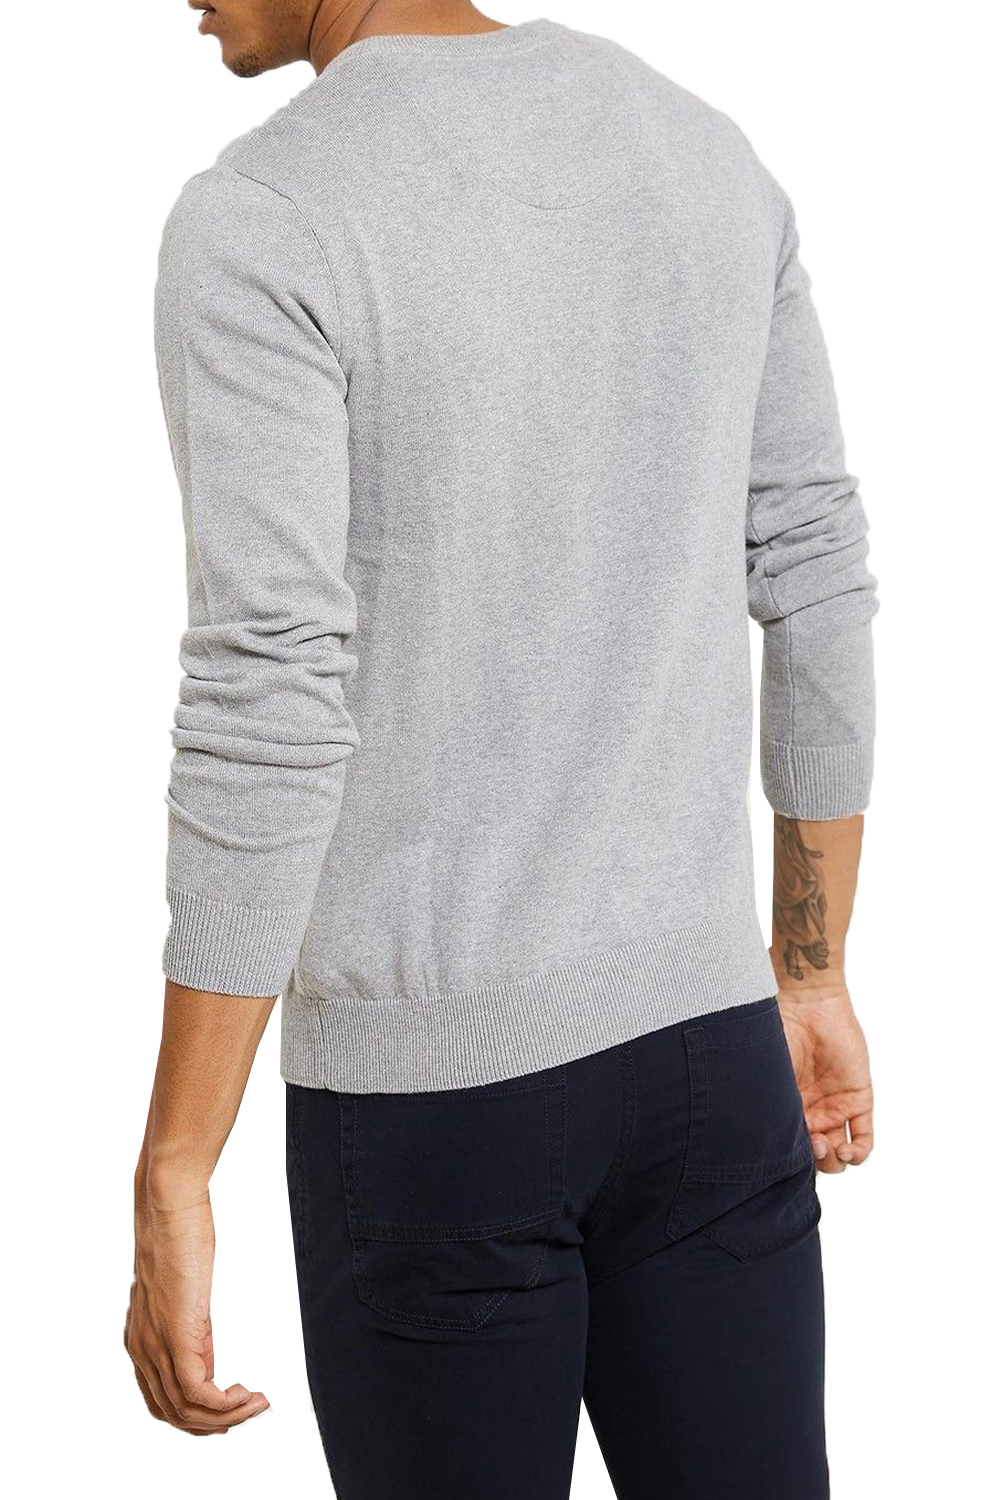 Threadbare Mens Bleak Sweater Lightweight Knitted Pull Over V Neck